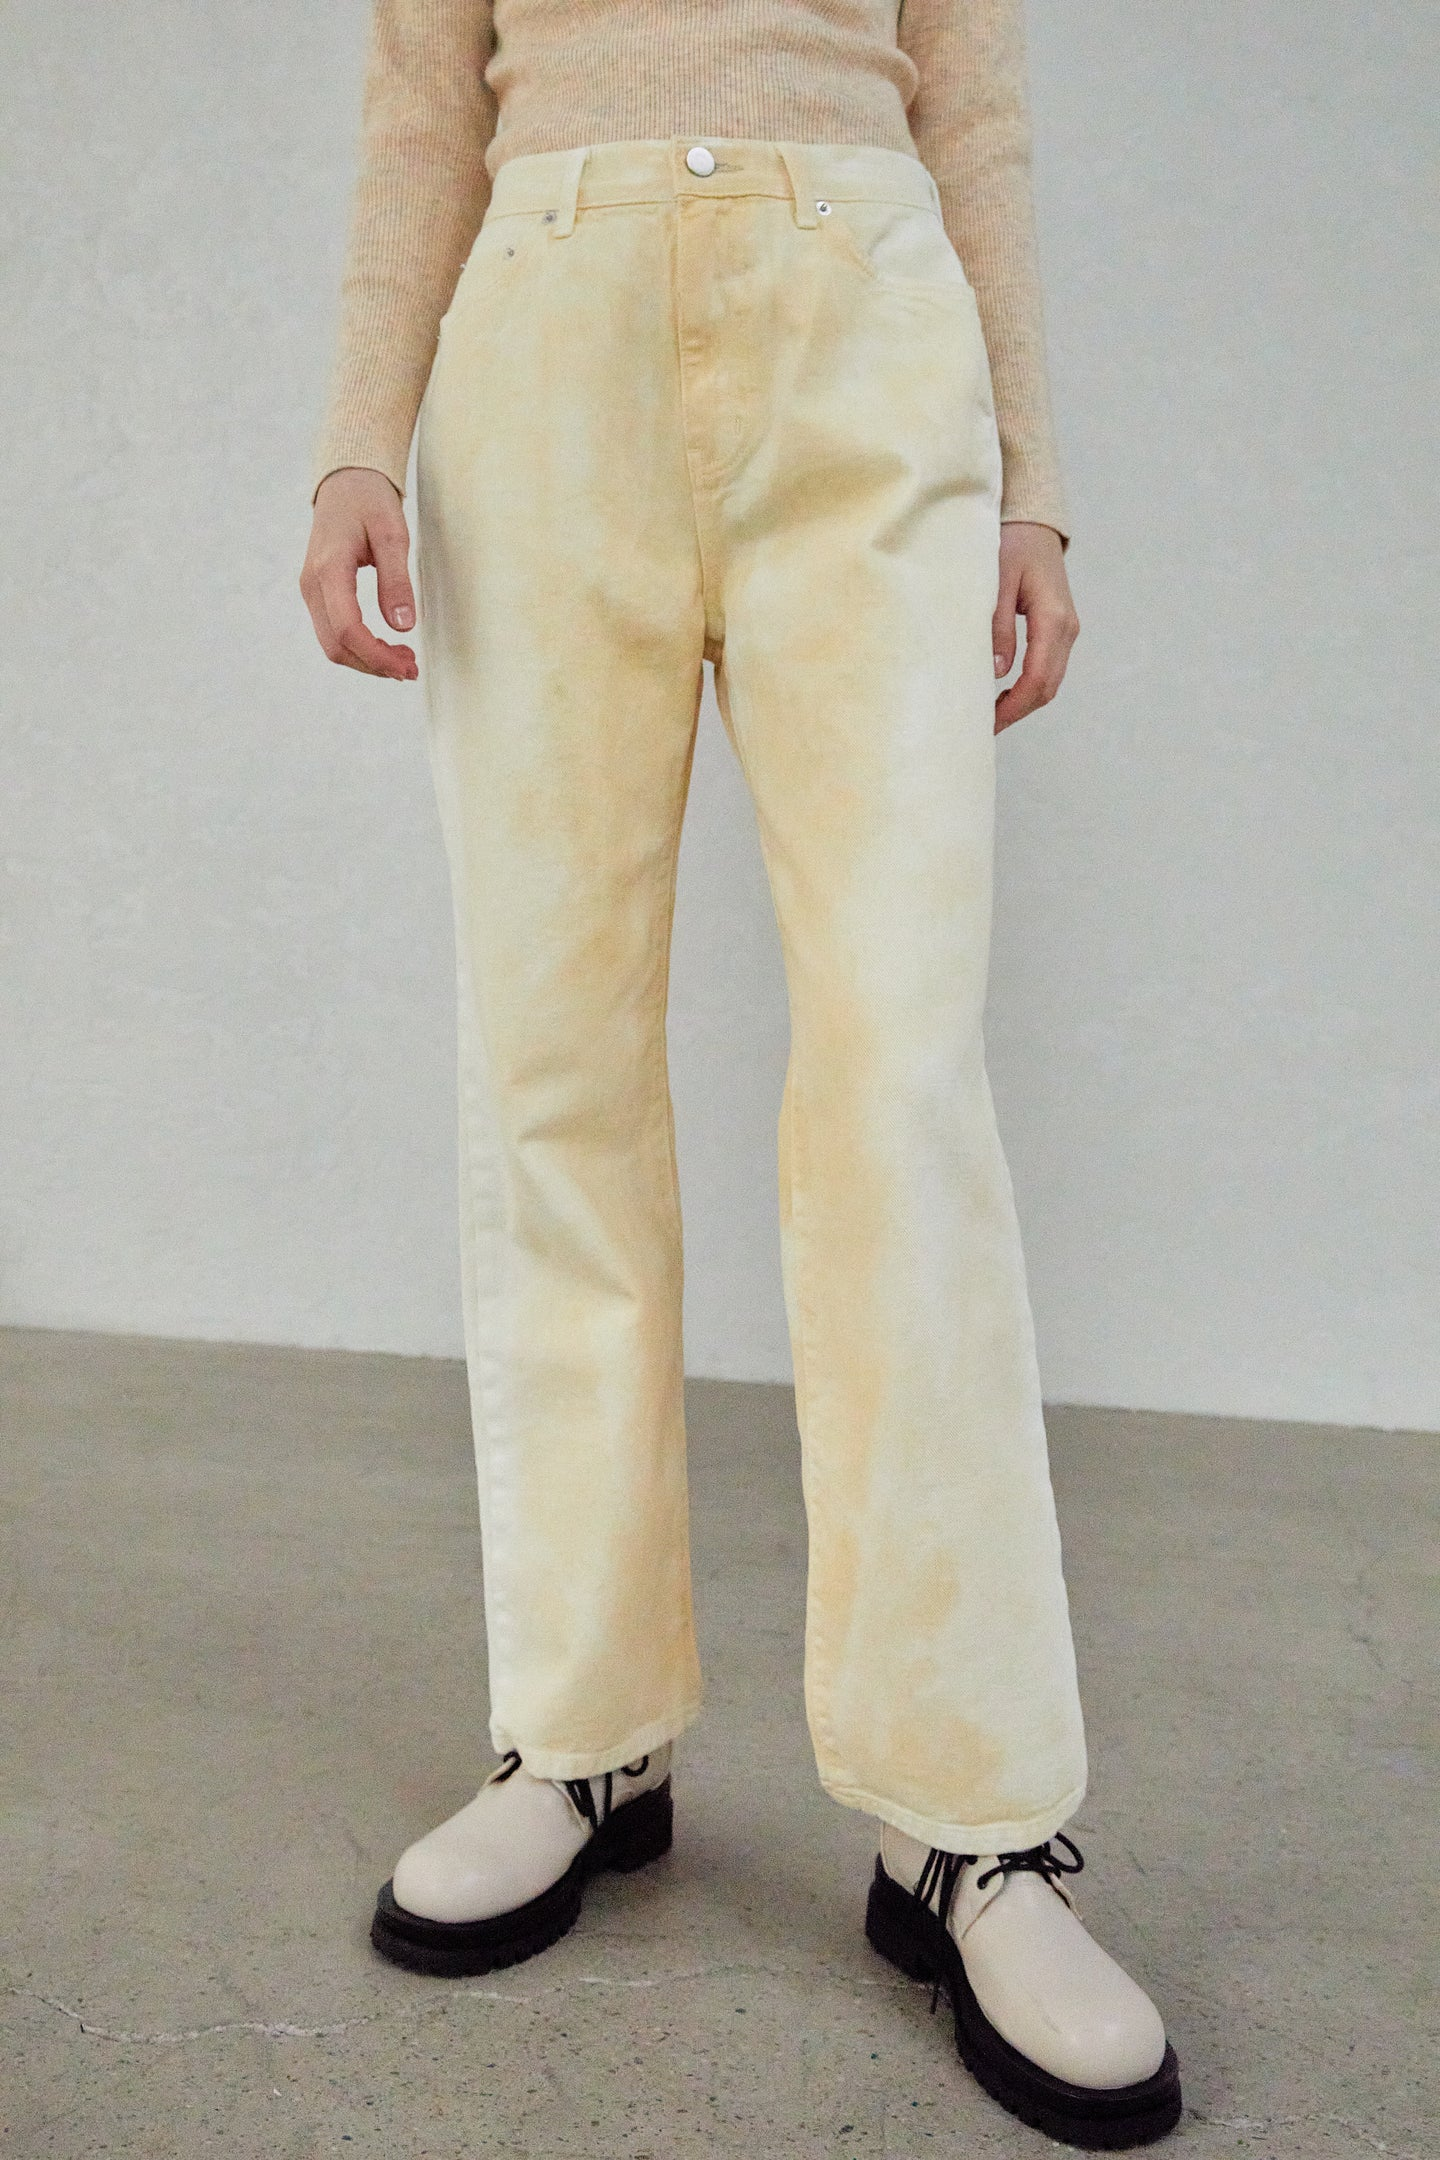 TIE DYE RELAXED JEANS, BANANA by Source Unknown, available on thesourceunknown.com for $88 Kendall Jenner Pants Exact Product